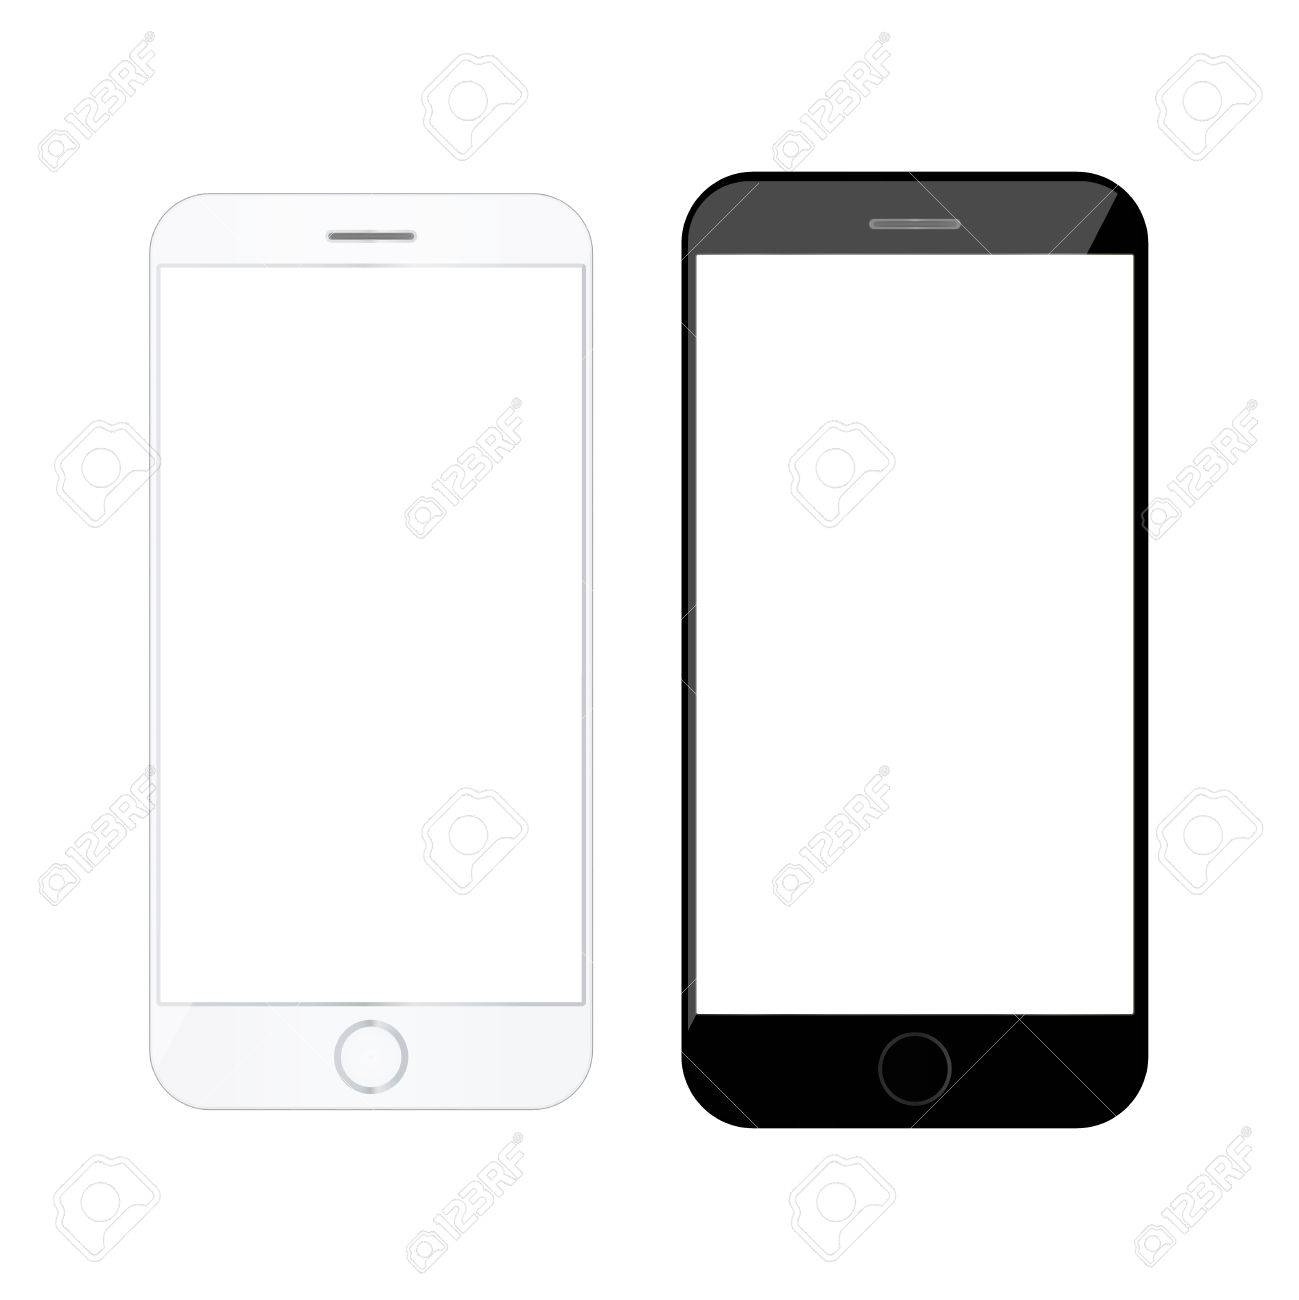 c5edfed99aa6be Realistic smartphone Modern mobile phone Blank cellphone Telephone mockup  Mobile phone template Stock Vector - 75490621